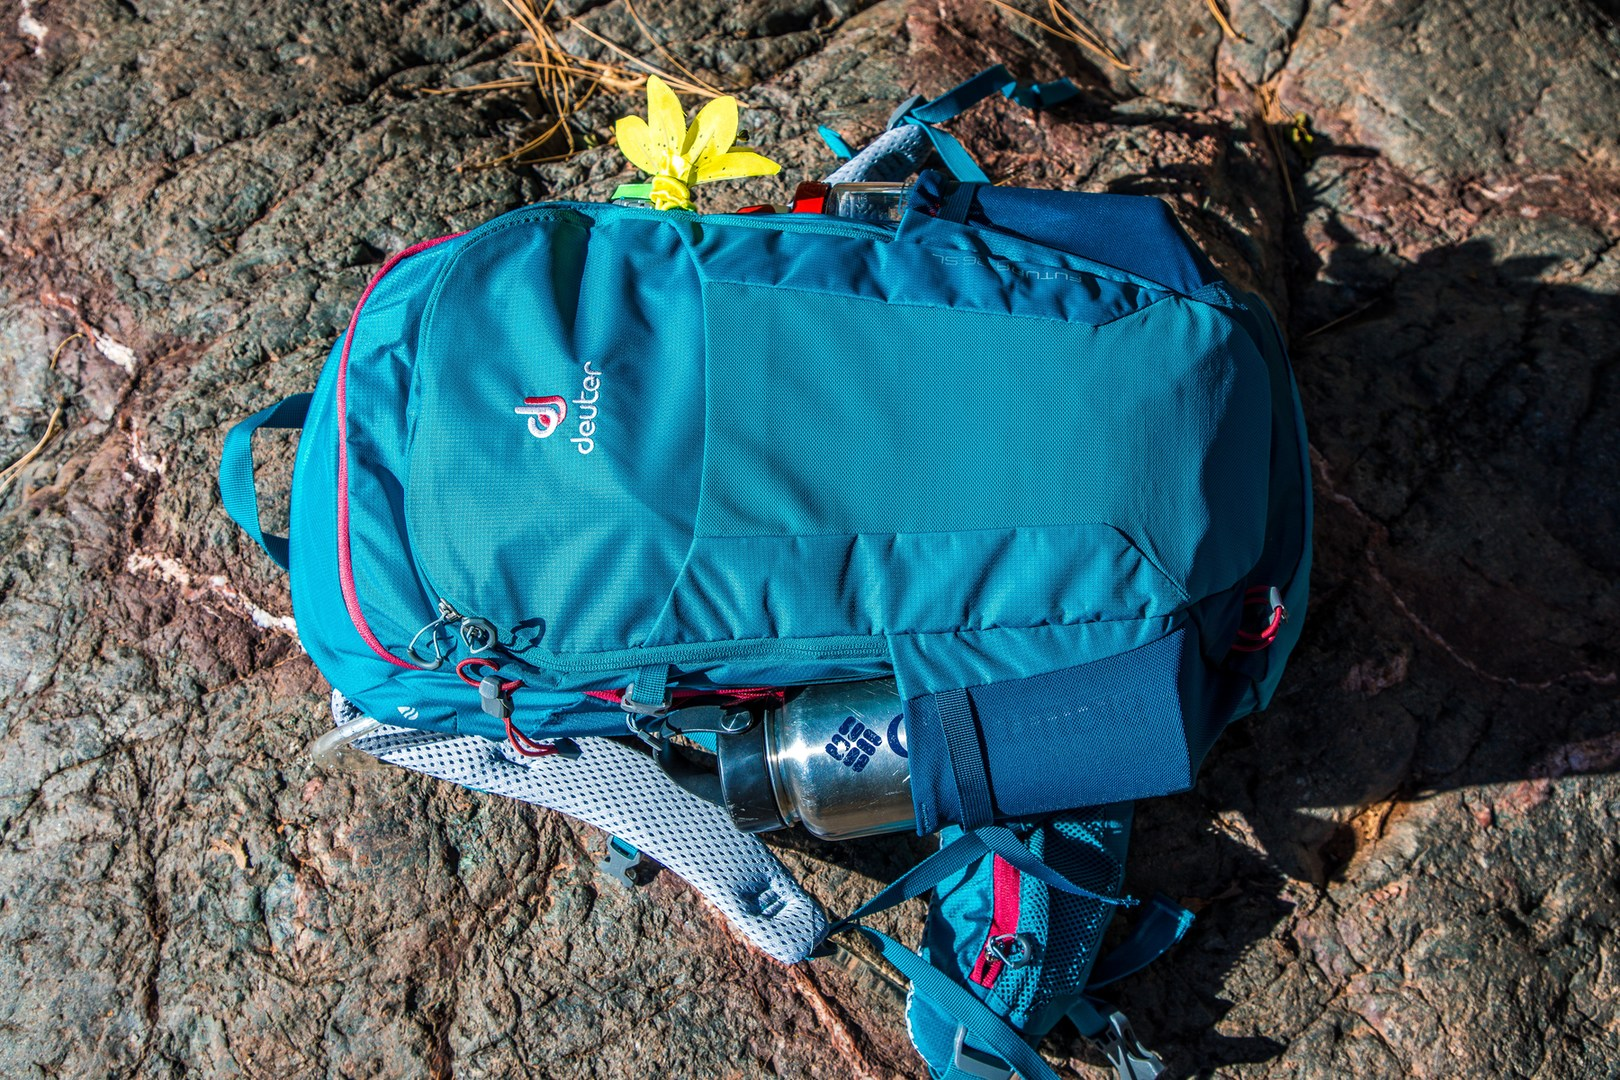 3ede782df8 ... The Deuter Futura 26 SL daypack.- Gear Review  5 Best Women s Daypacks  of